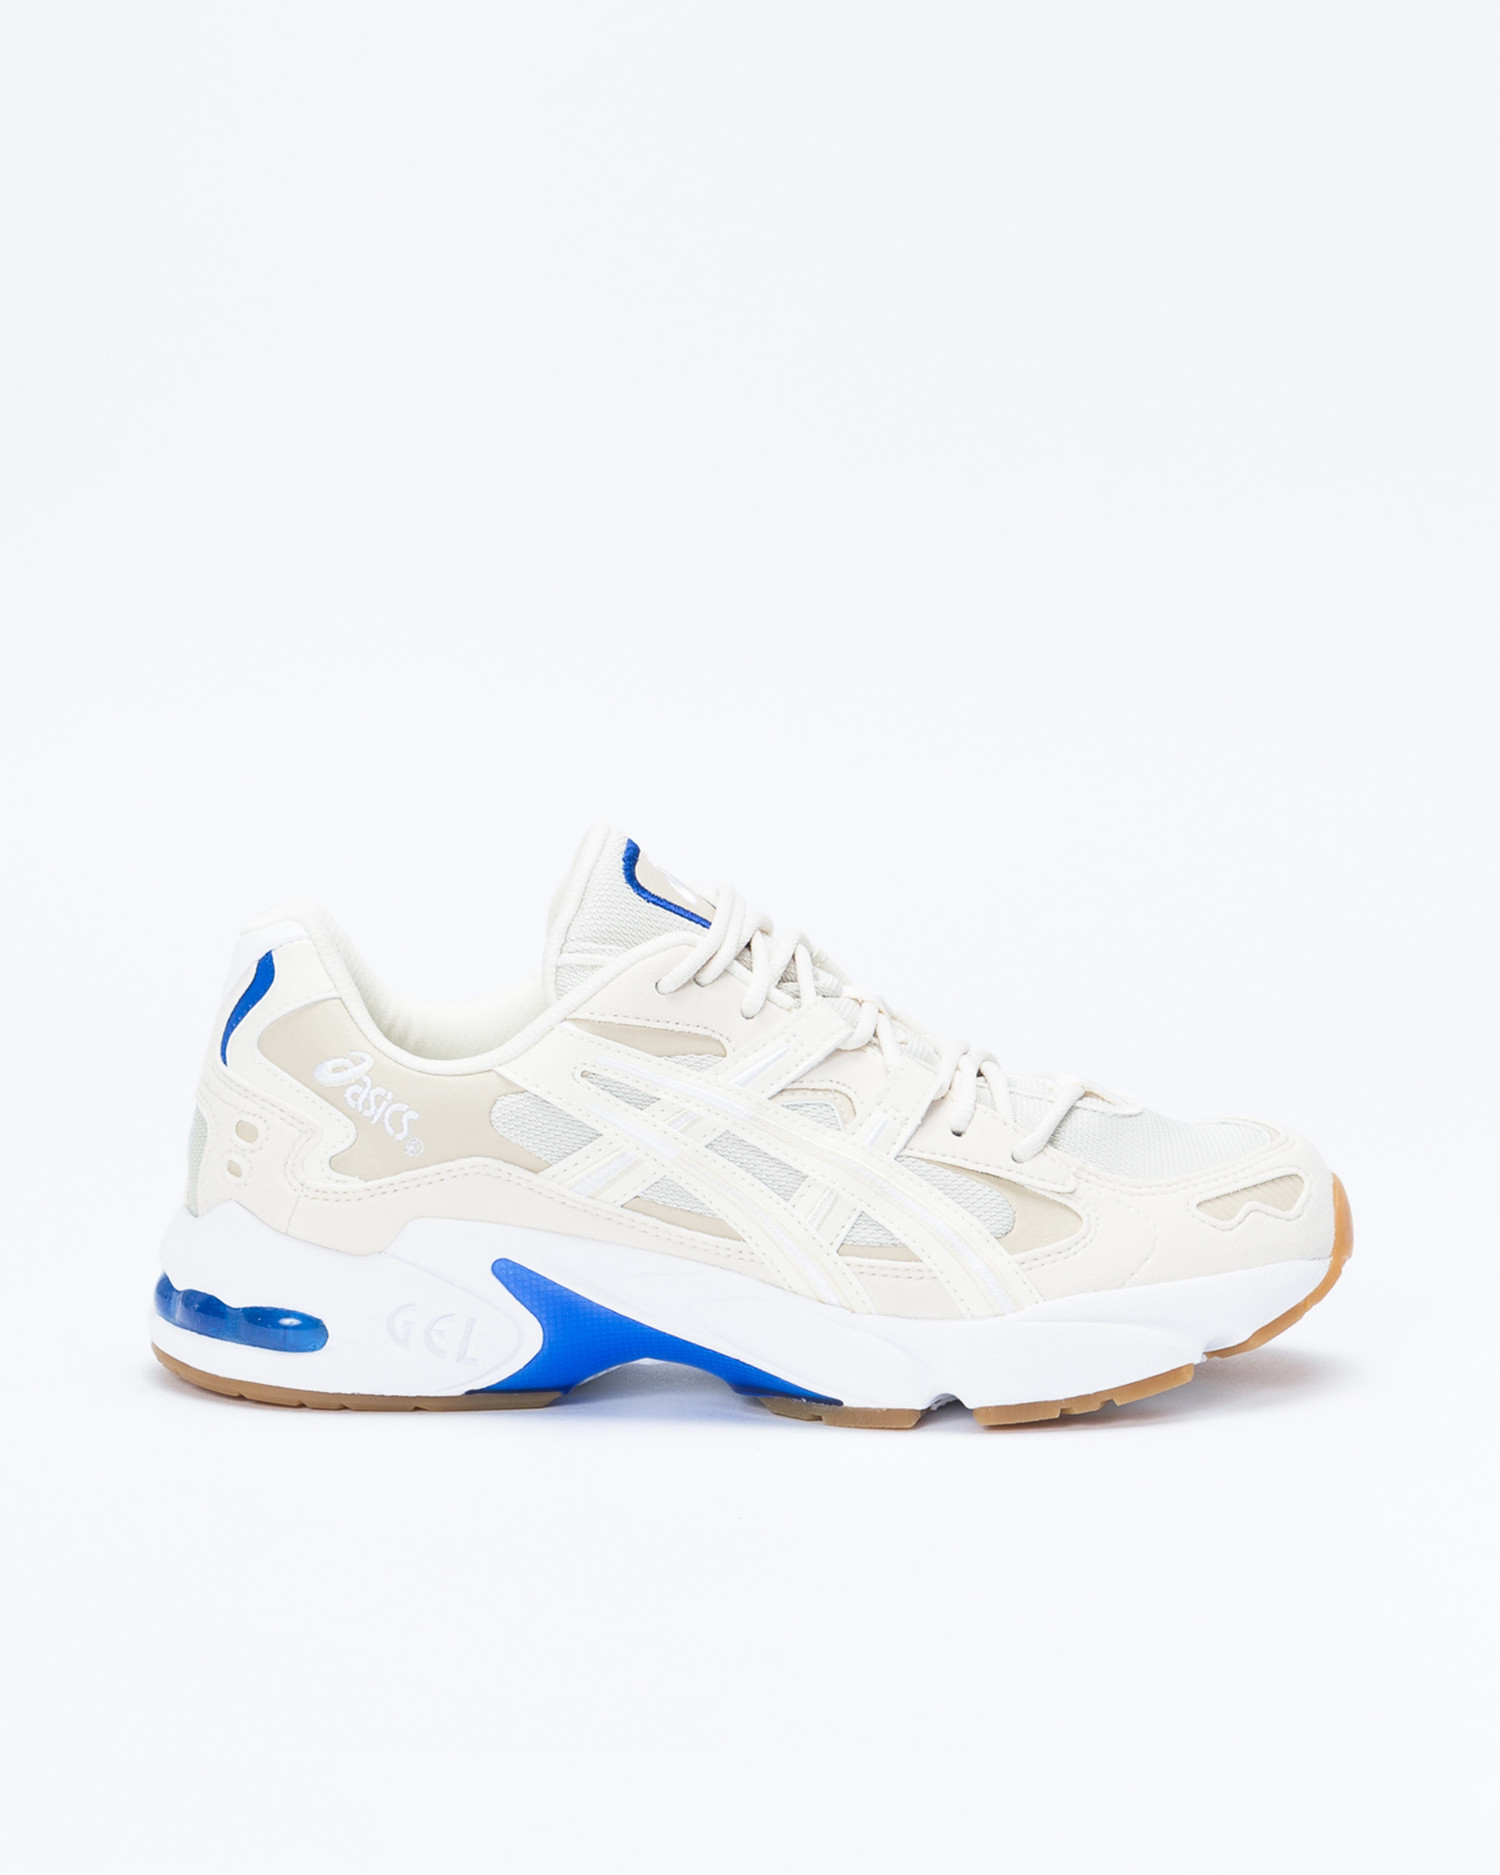 Asics Gel-Kayano 5 OG Birch/Birch